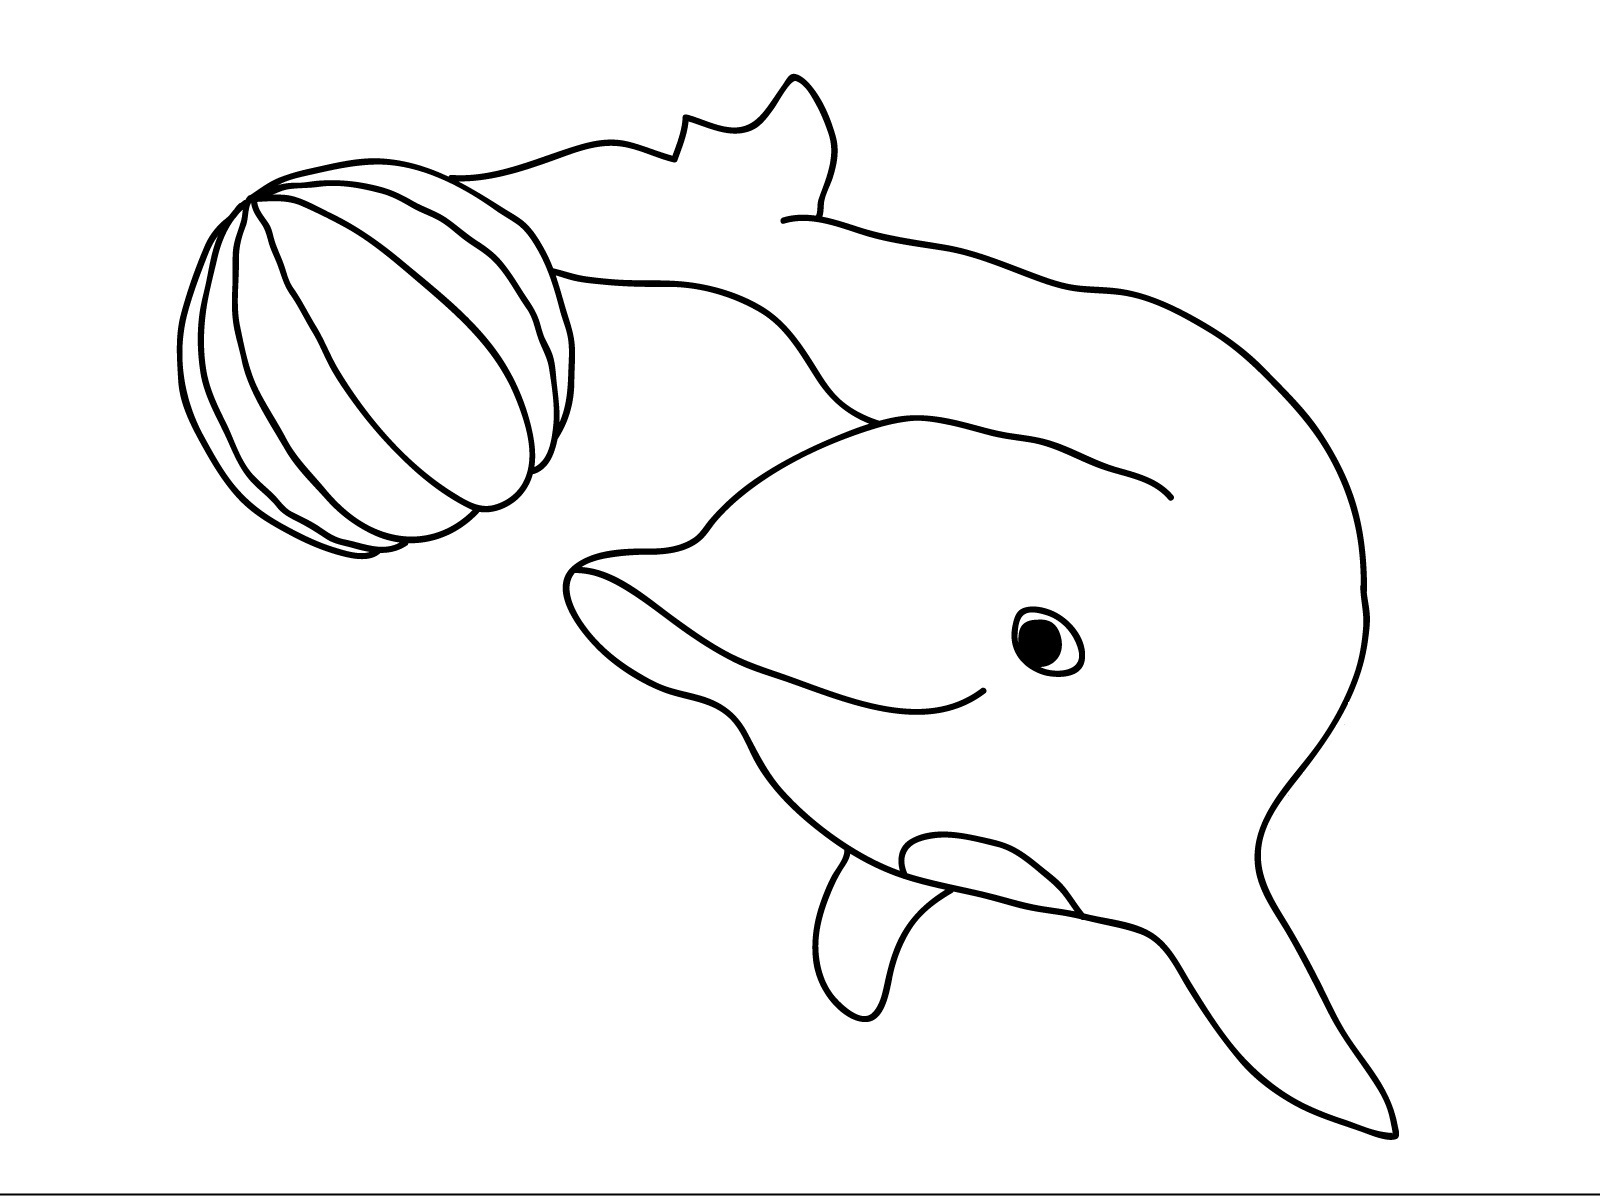 Baby Dolphin Coloring Pages - GetColoringPages.com | 1200x1600